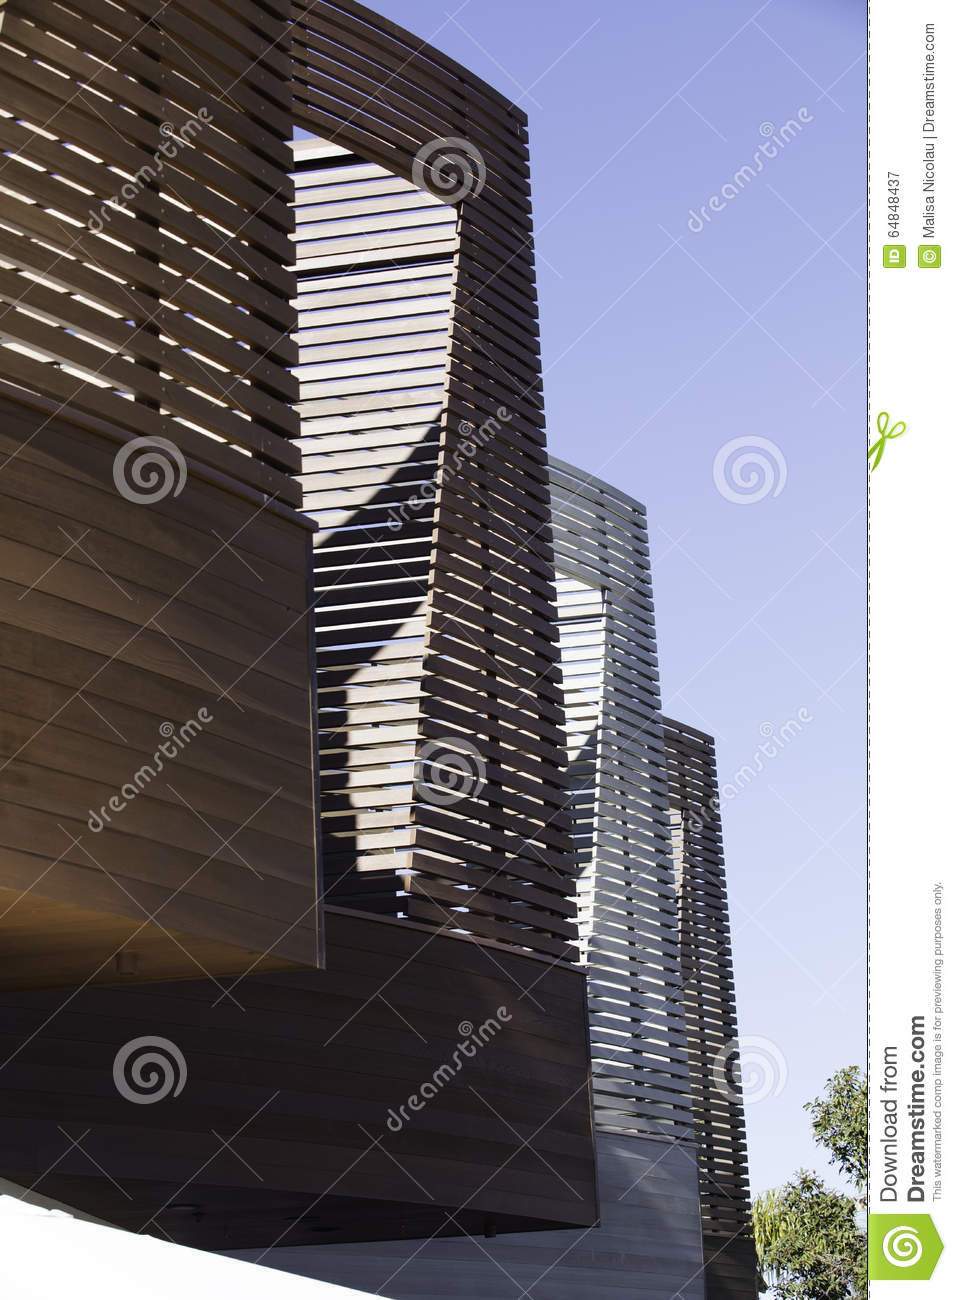 Vertical and horizontal line details in architecture on a buildi